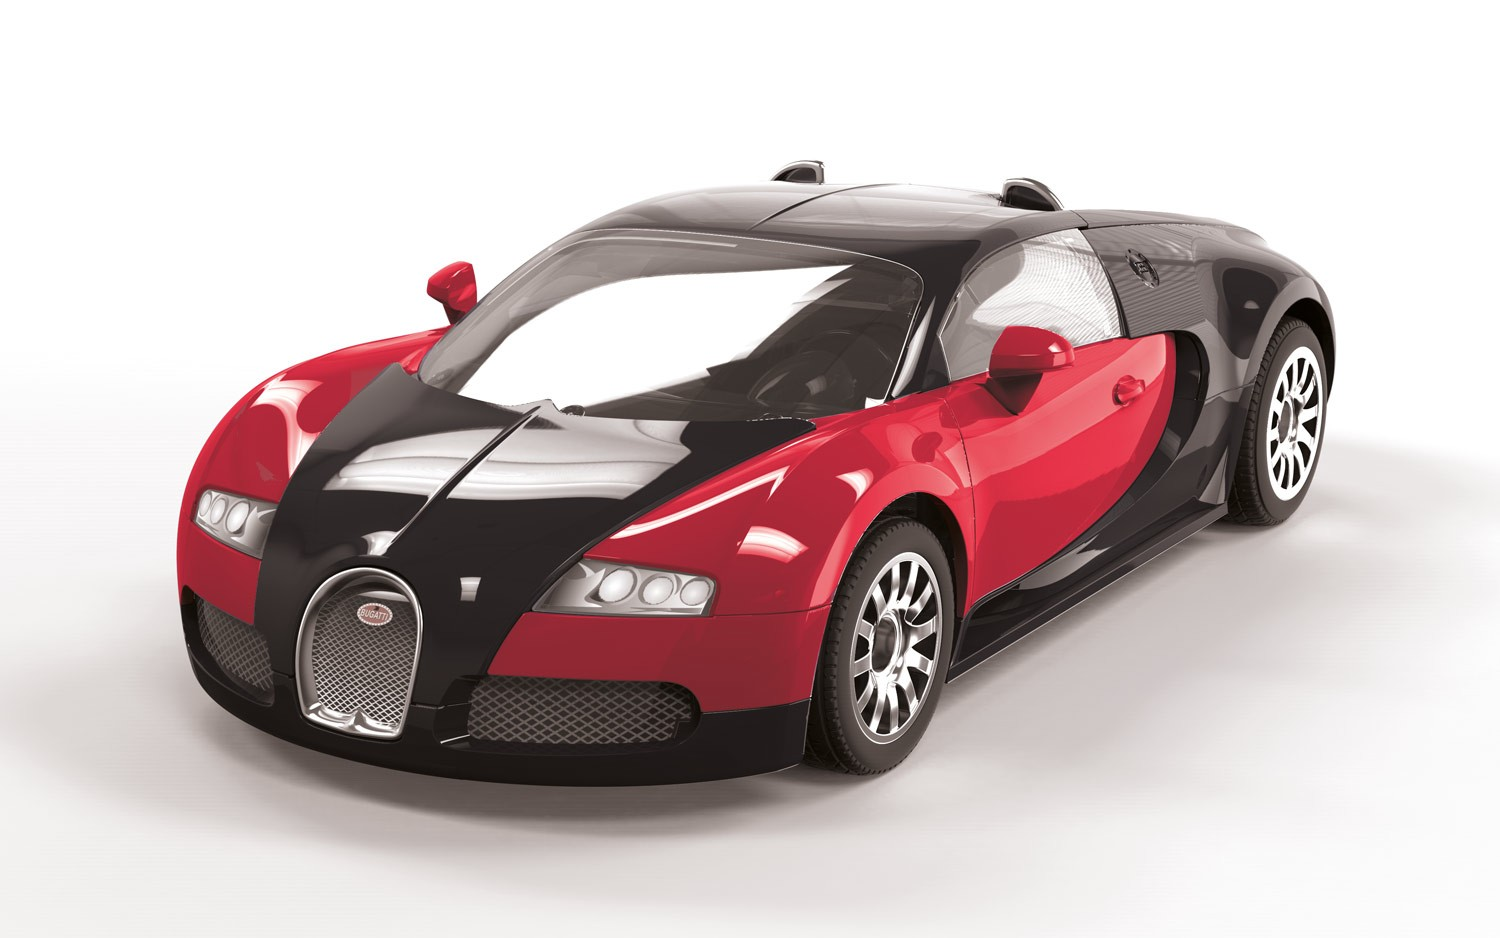 airfix j6020 bugatti veyron quick build menzels lokschuppen onlineshop. Black Bedroom Furniture Sets. Home Design Ideas